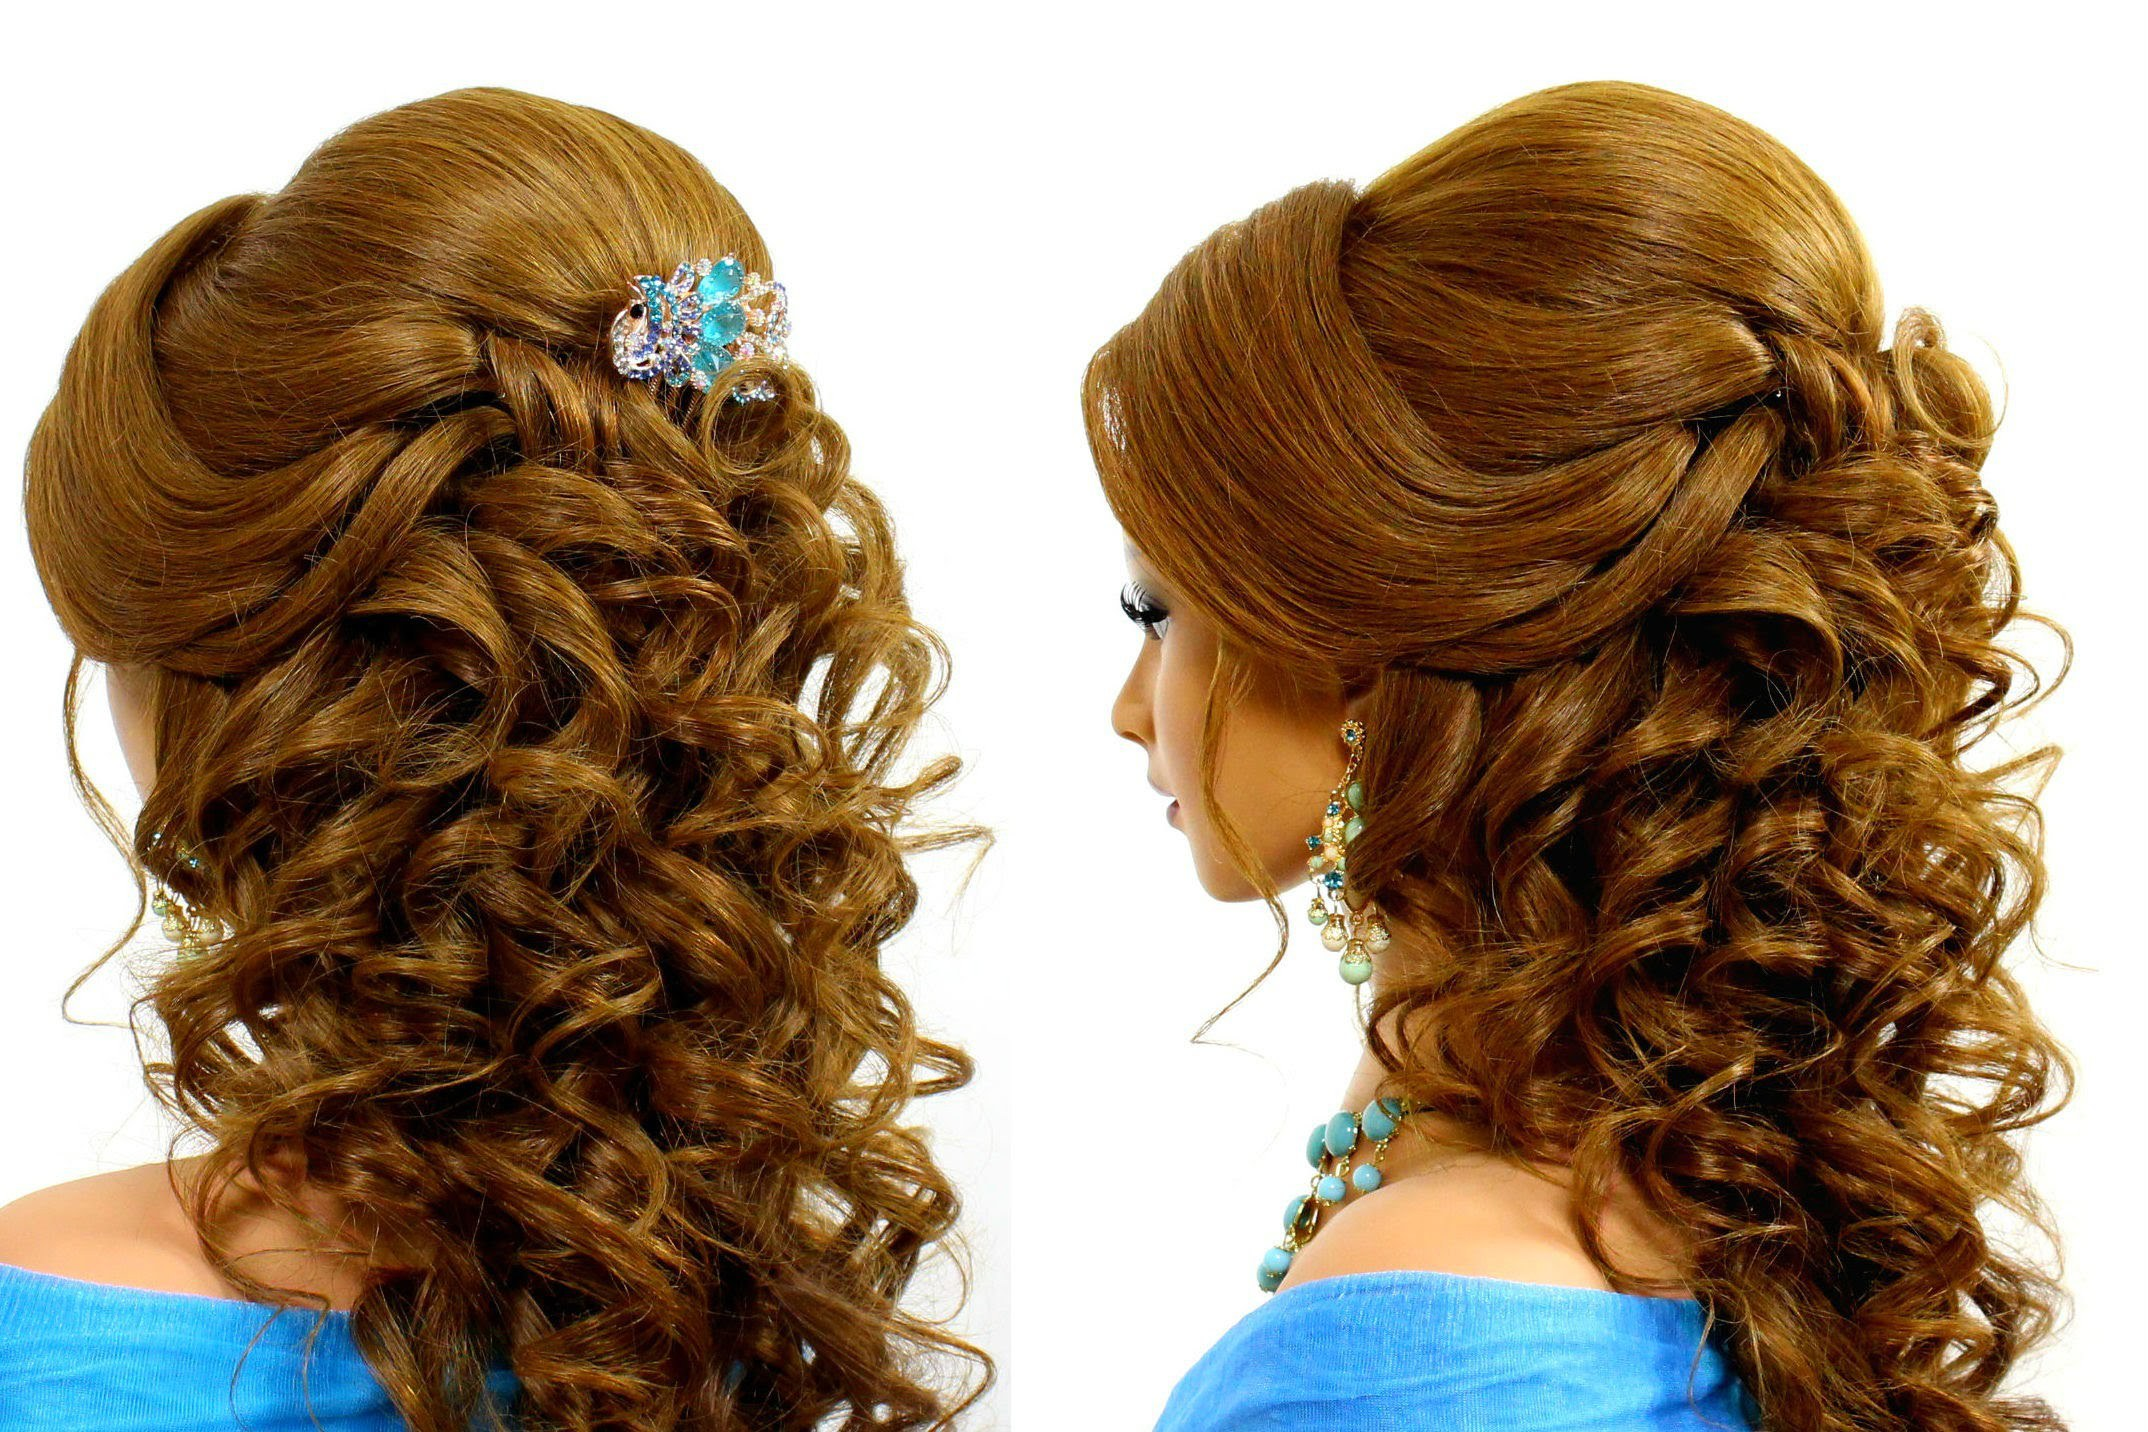 Beautiful Wedding Hairstyle For Long Hair Perfect For Any: Wedding Hairstyles For Long Hair Images Photos Pictures